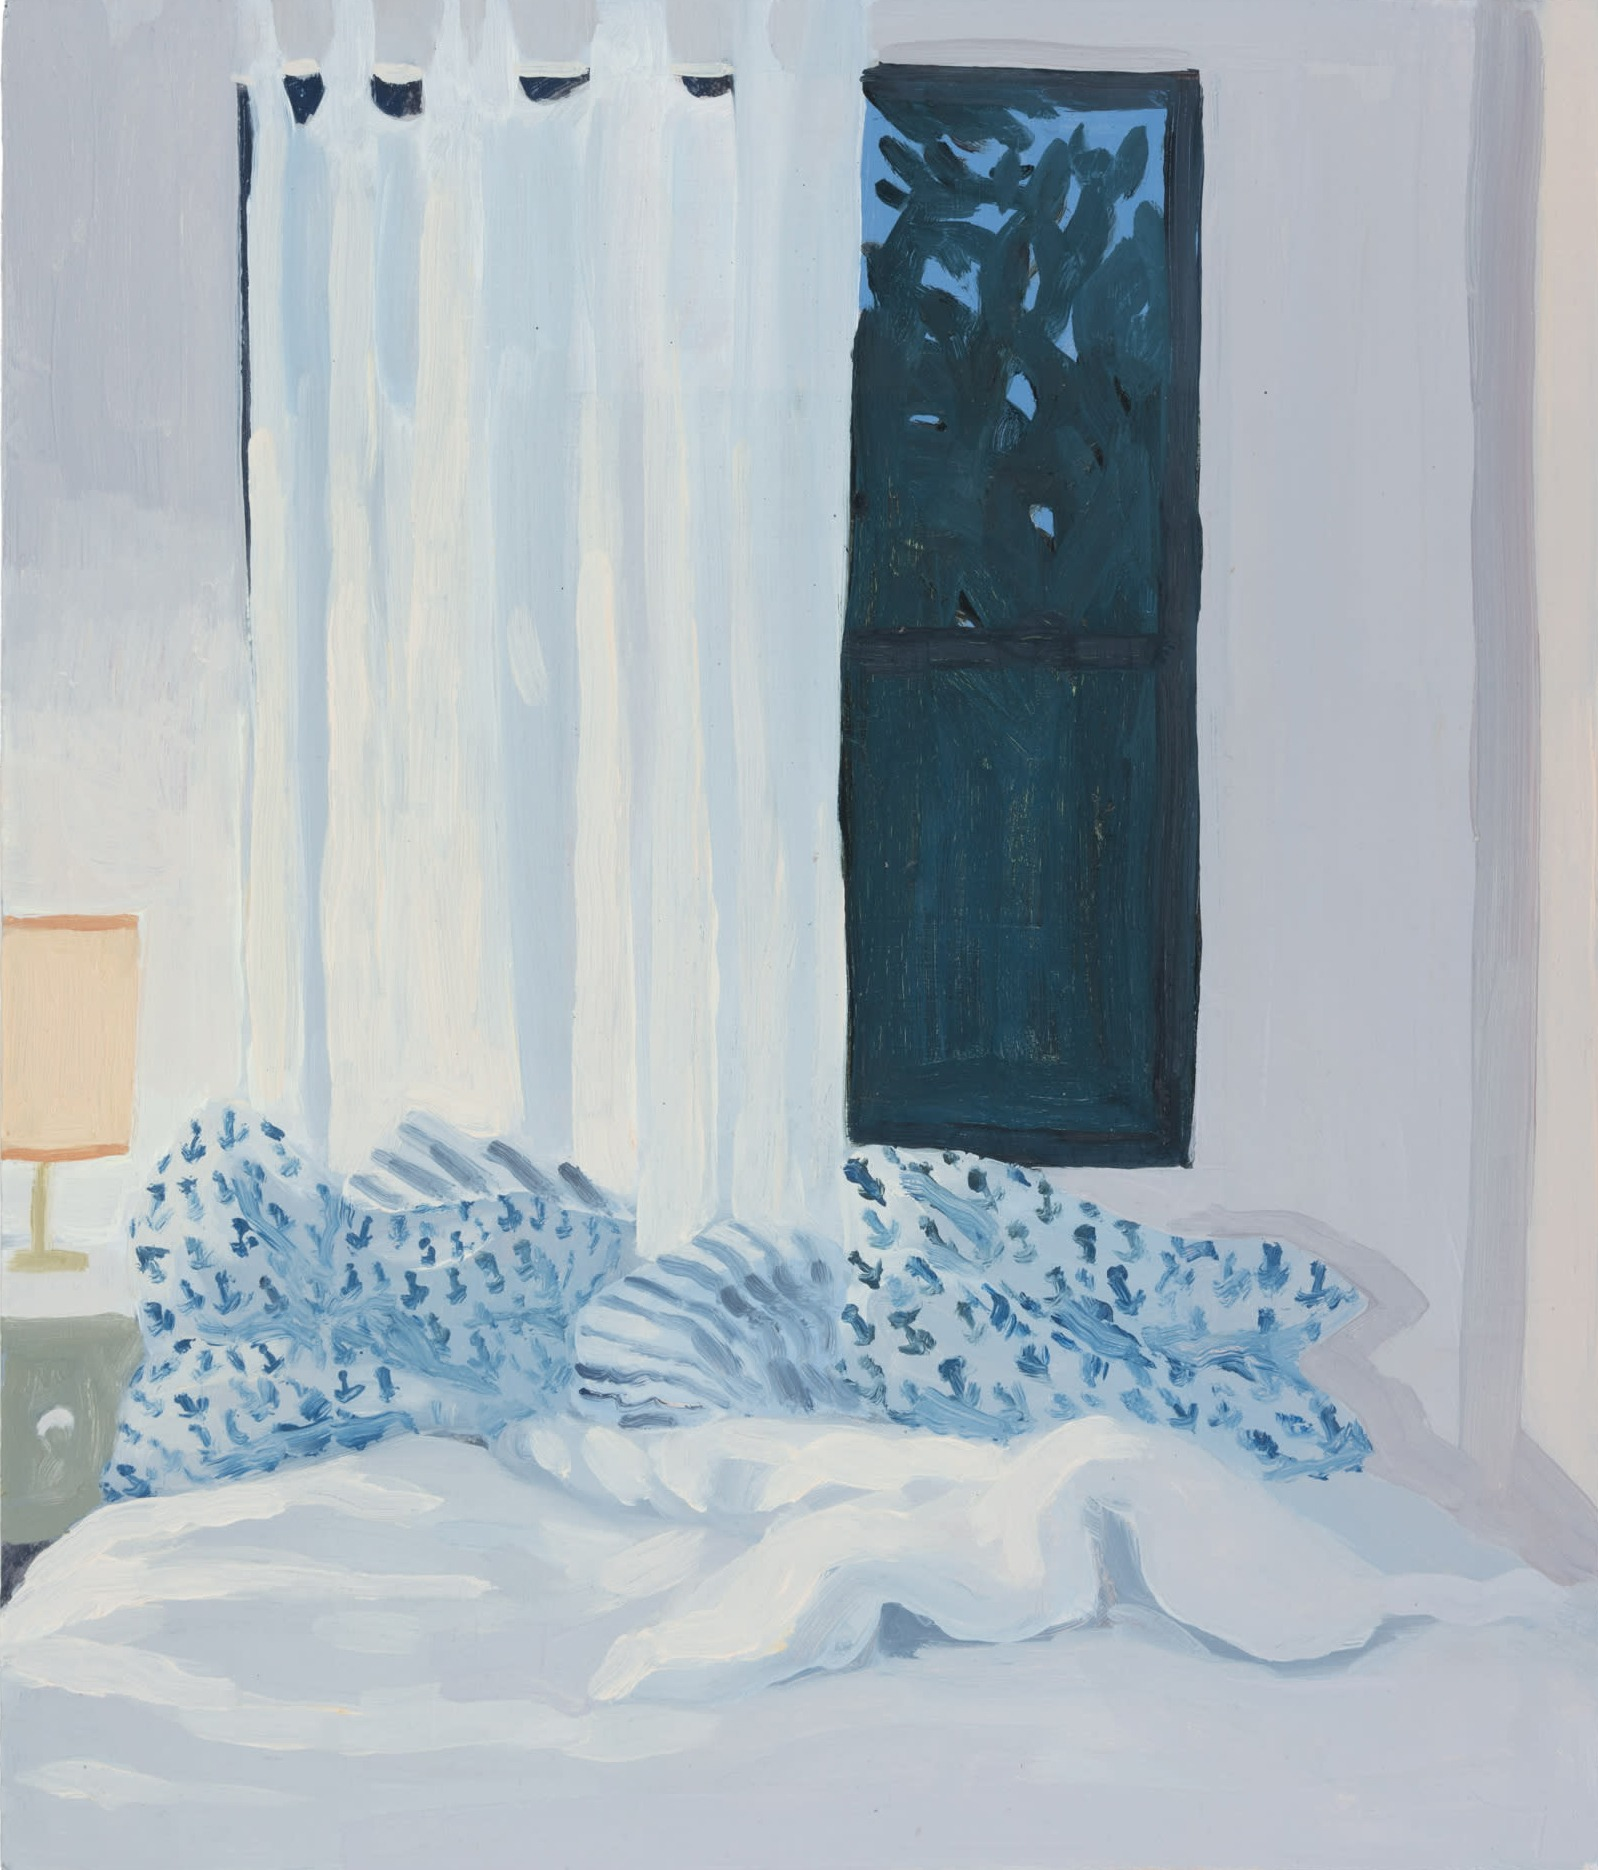 A painting by Claudia Keep titled Evening, In May, dated 2020.